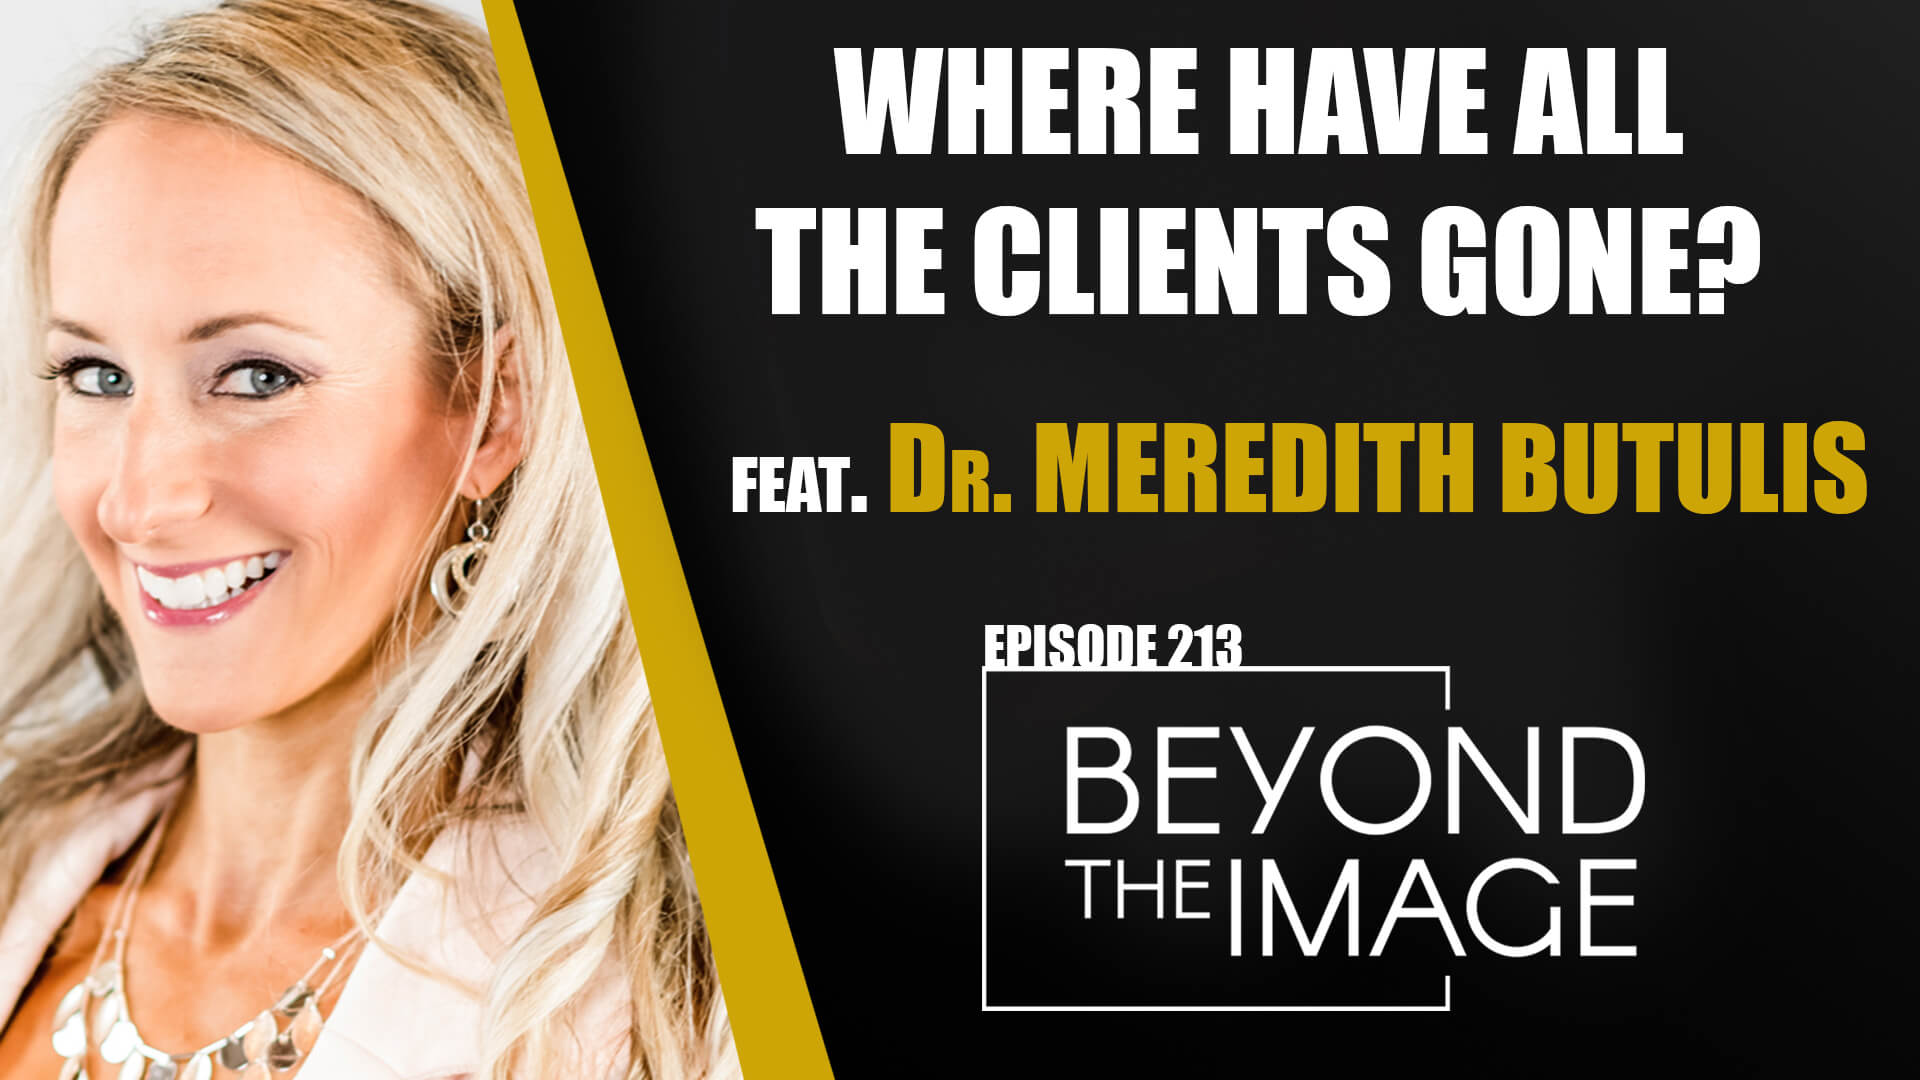 BTI #213: Where Have All the Clients Gone? Feat. Dr. Meredith Butulis